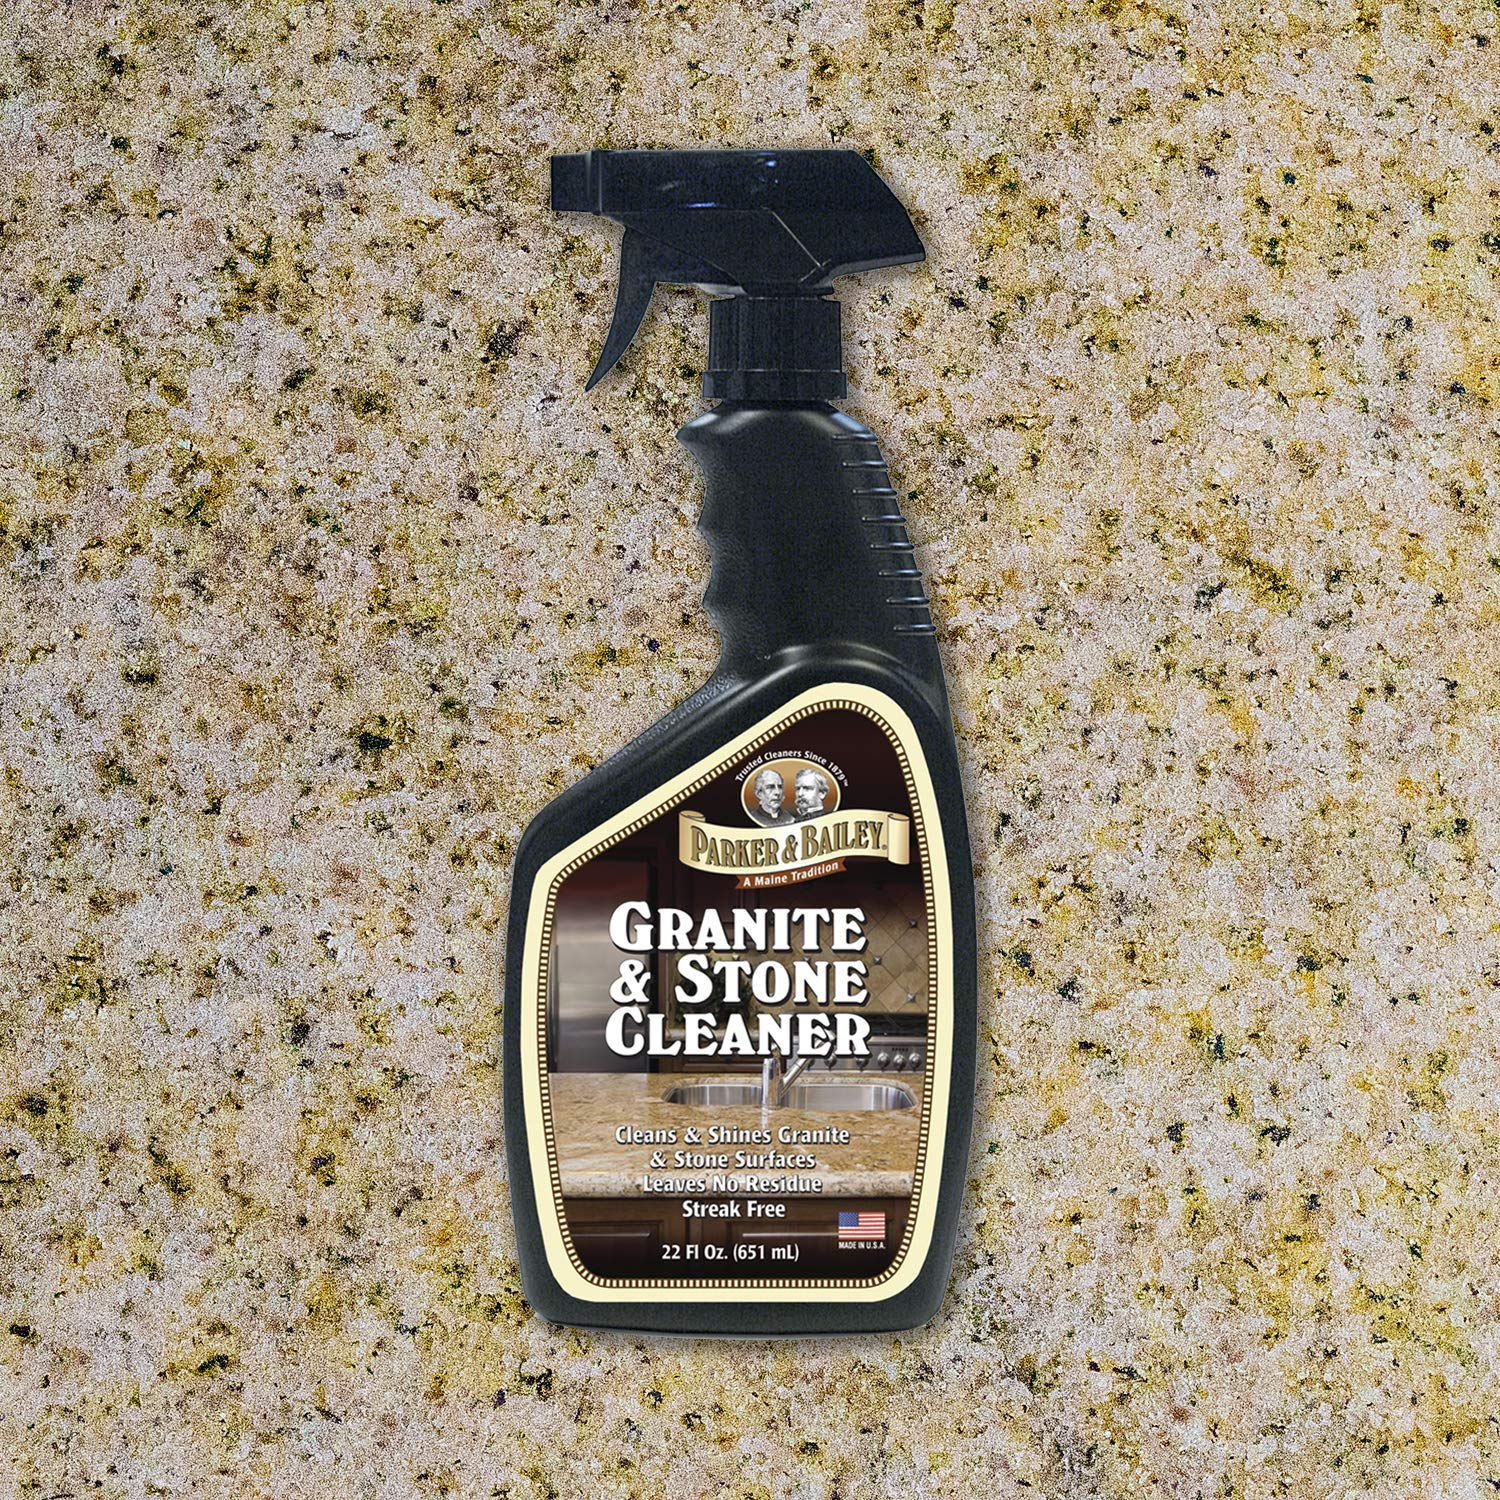 Parker and Bailey- Granite & Stone Cleaner Bundled with Kitchen Cabinet Cream by Parker & Bailey (Image #4)